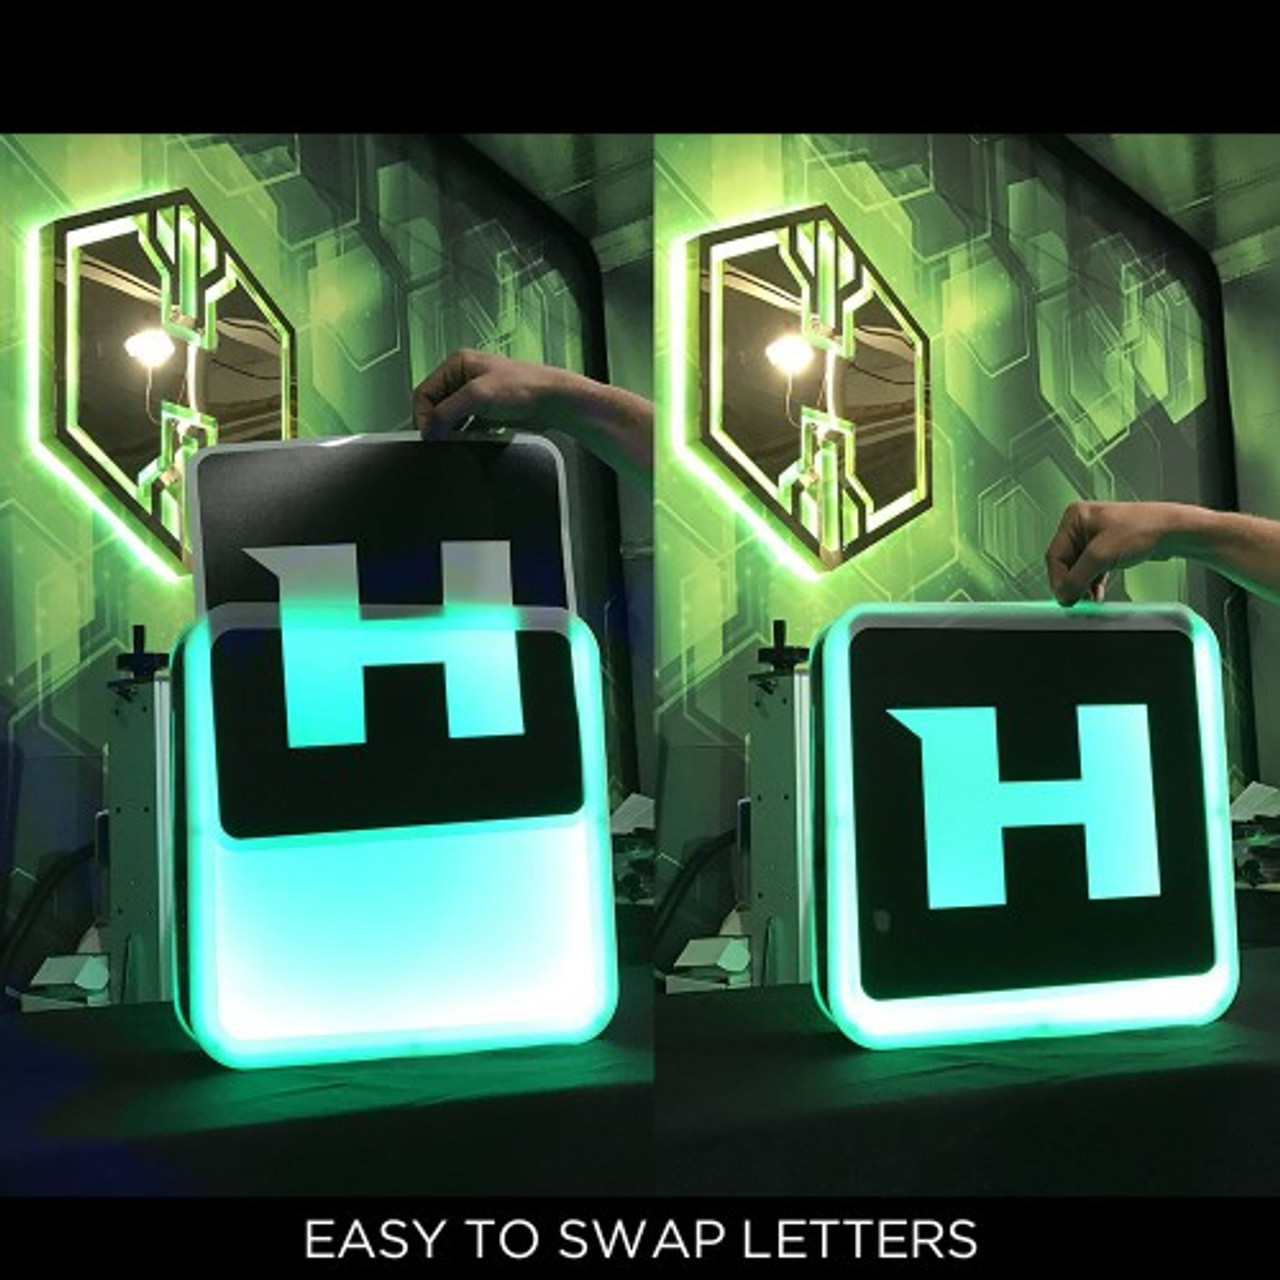 vip-nightclubshop-name-lettersshield-birthday-vip-name-changer-interchangeable-letter-box-shield-presenter-cake-promo-nightclub.JPGdisplay-500x500